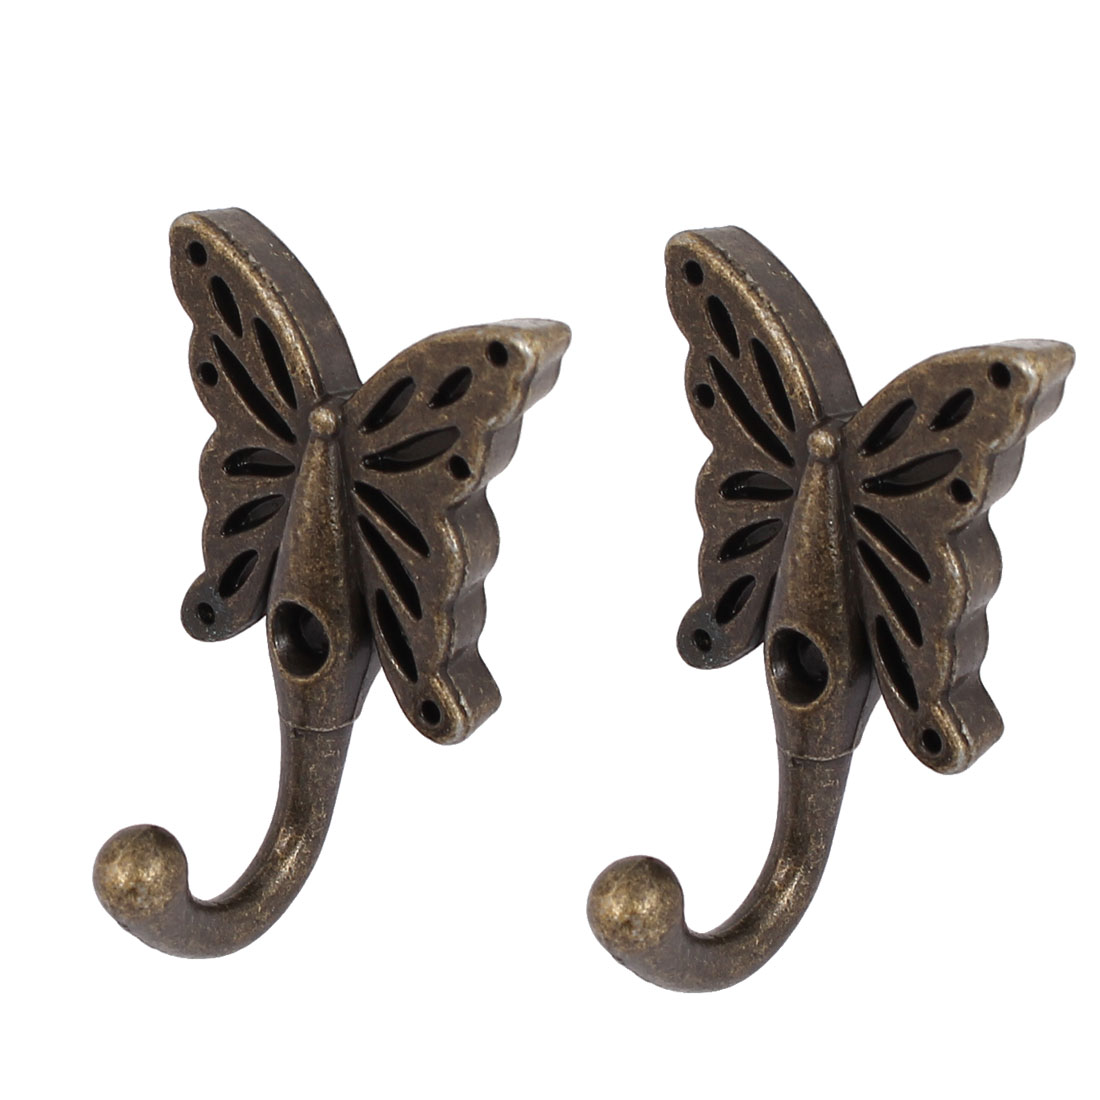 Robe Clothes Hat Butterfly Key Coat Hooks Wall Hanger 2pcs - image 3 of 3